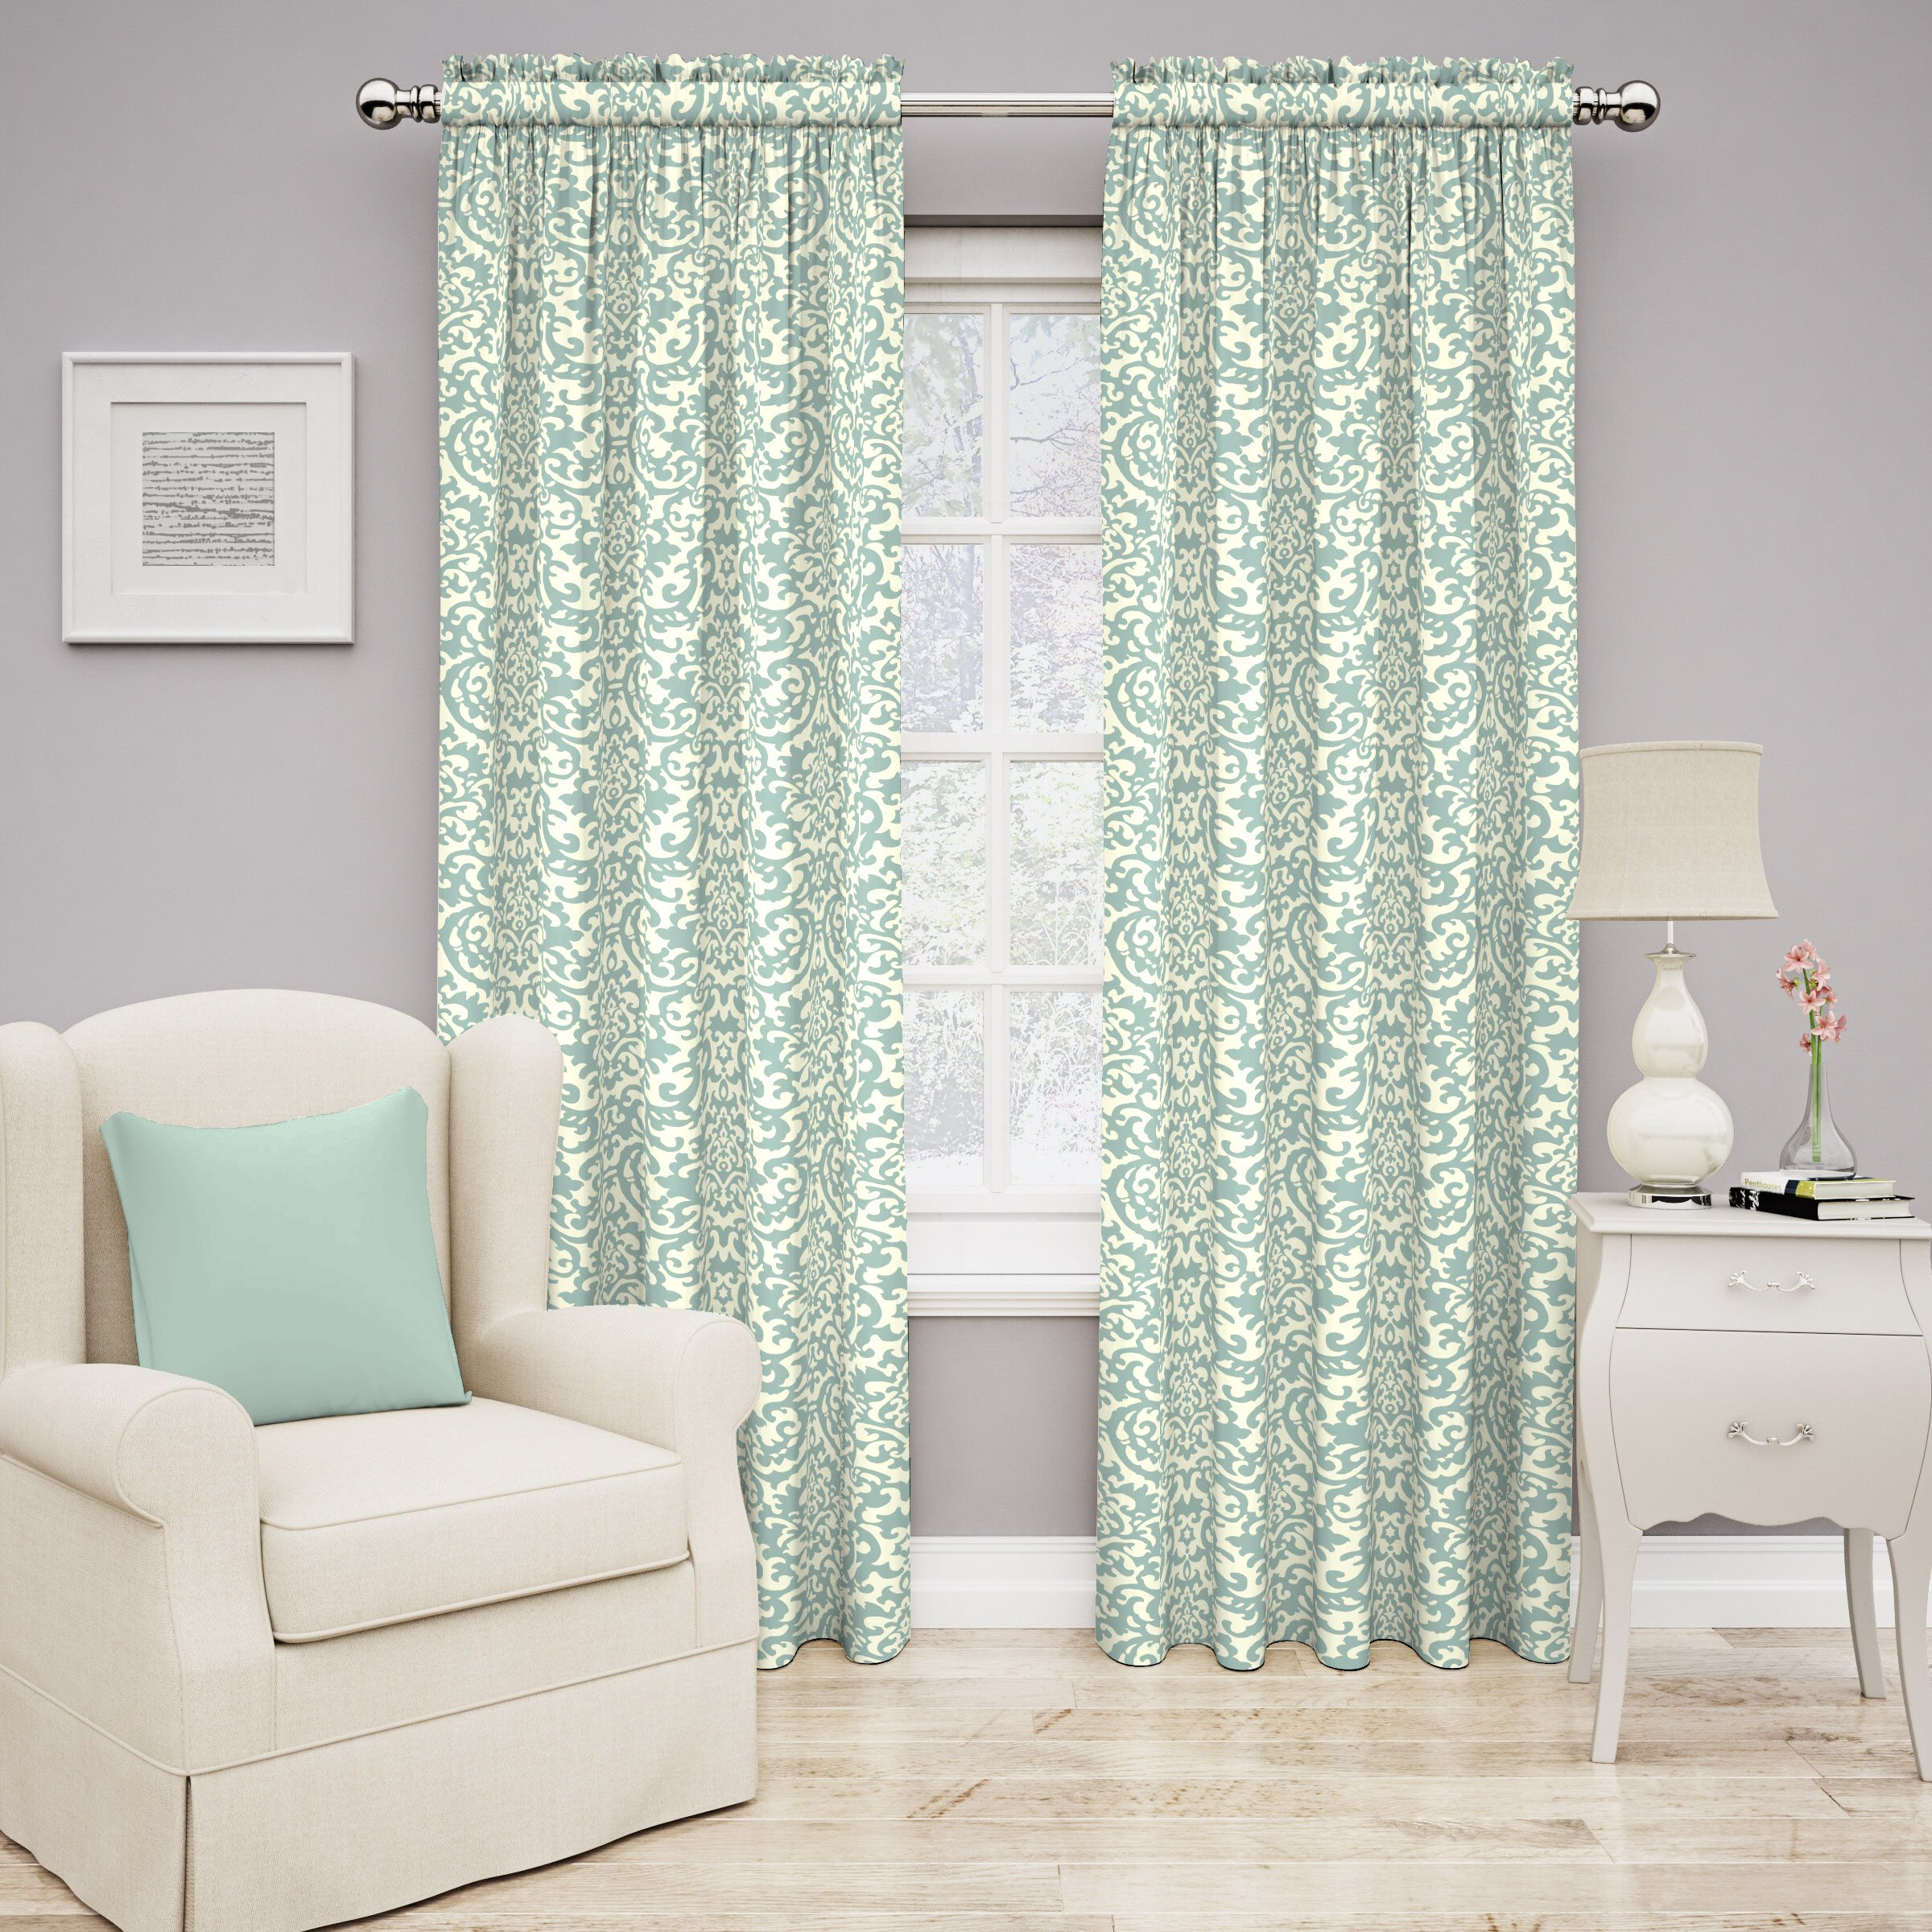 Traditions By Waverly 14973052084SPA Duncan Damask 52-Inch by 84-Inch Single Window Curtain Panel, Spa by Traditions By Waverly (Image #1)